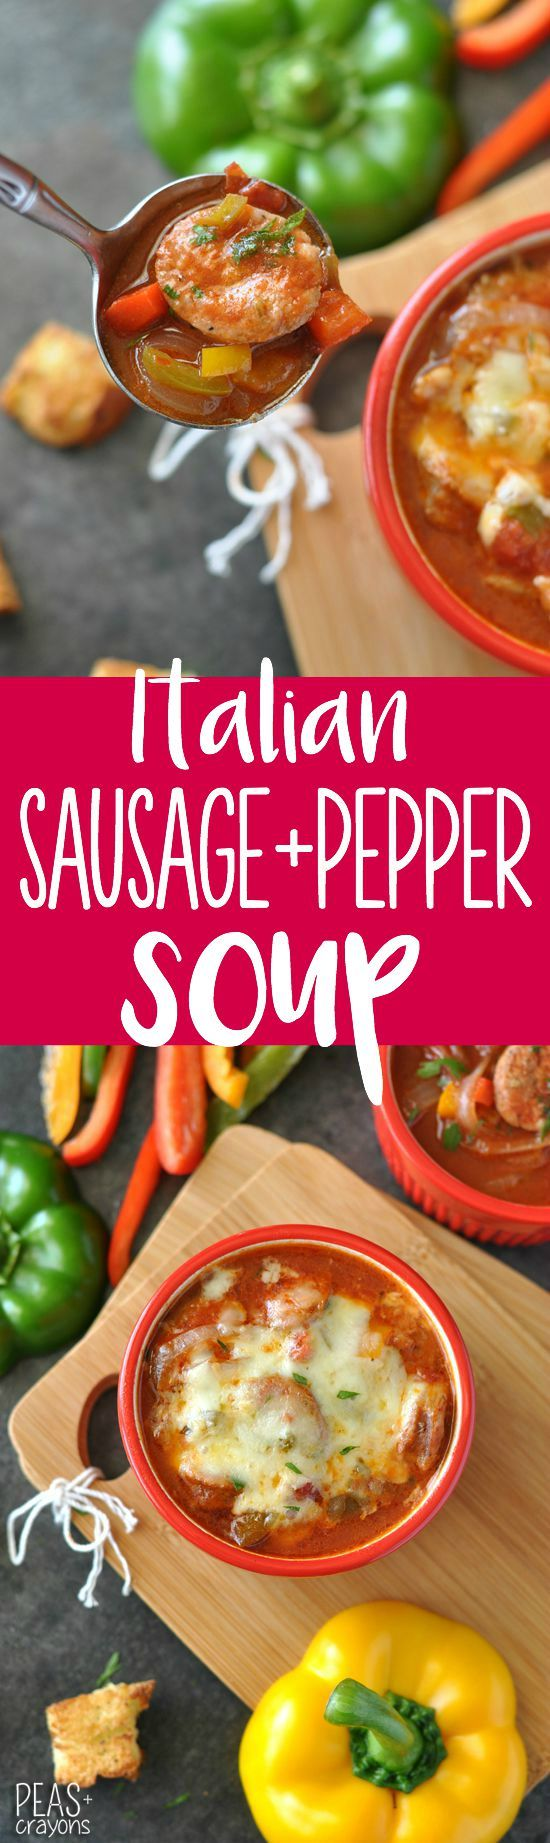 Italian Sausage, Pepper, and Onion Soup :: a healthy spin on a comfort food classic. I'm obsessed! (Paleo Pasta Italian Sausages)